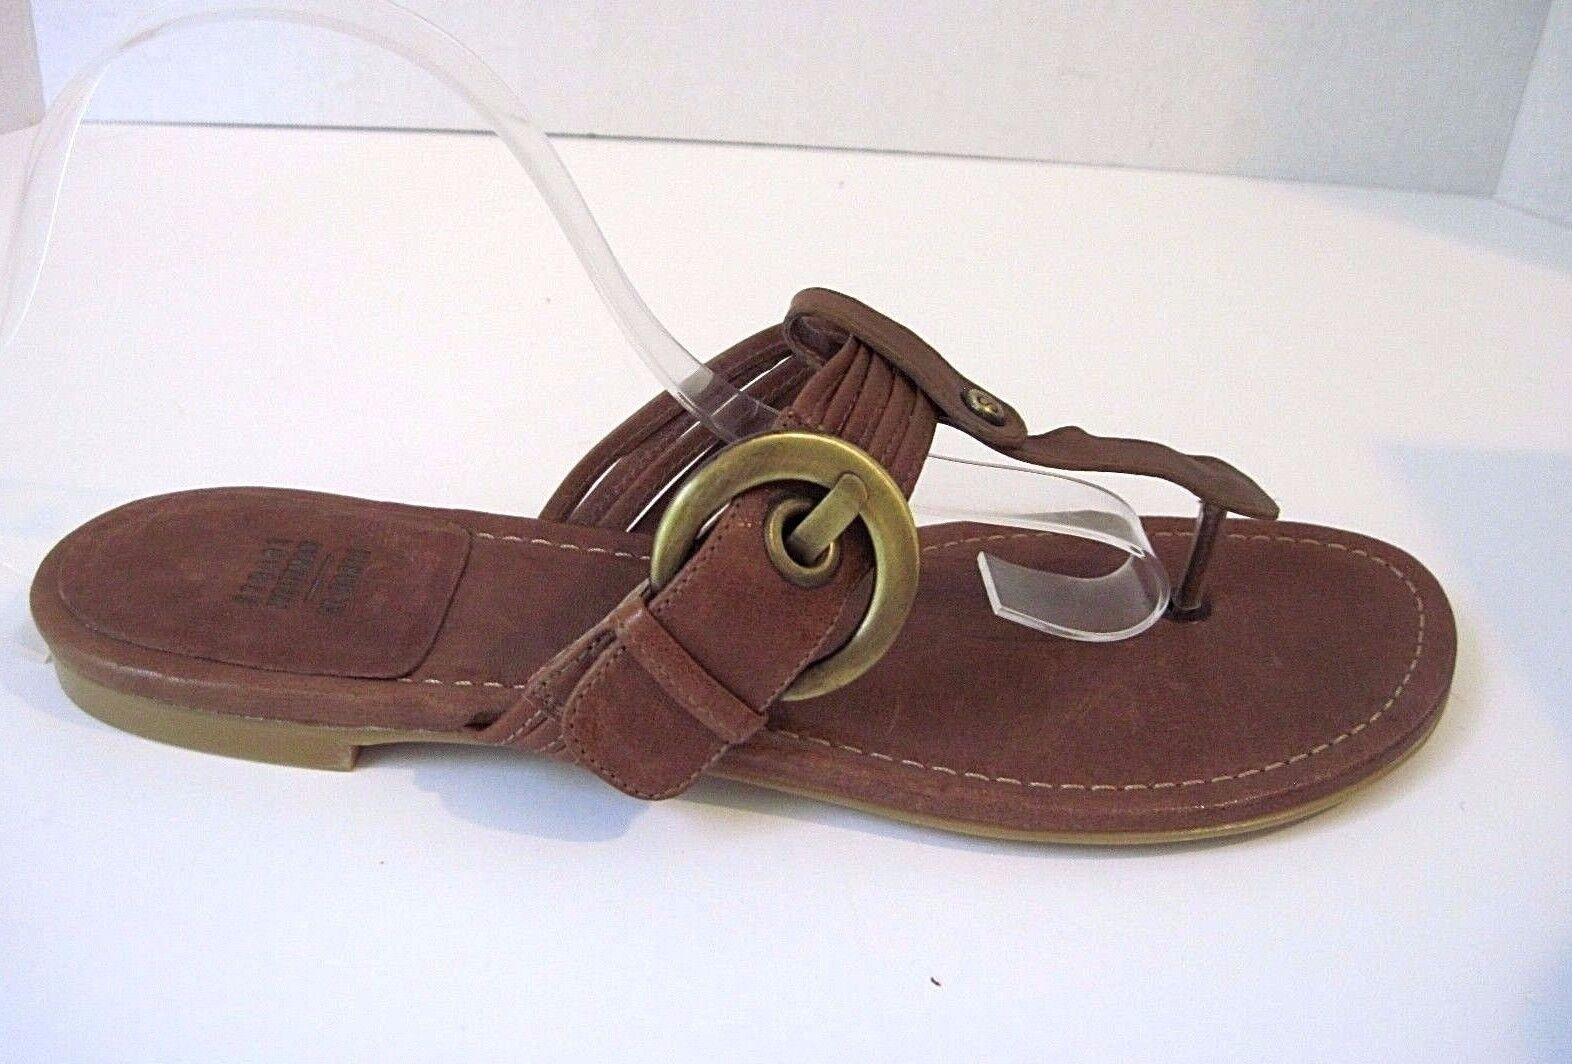 Stuart Weitzman St Barth Brown Pelle NEW Thong Sandal Front Buckle Size 40.5 NEW Pelle b9bc4c